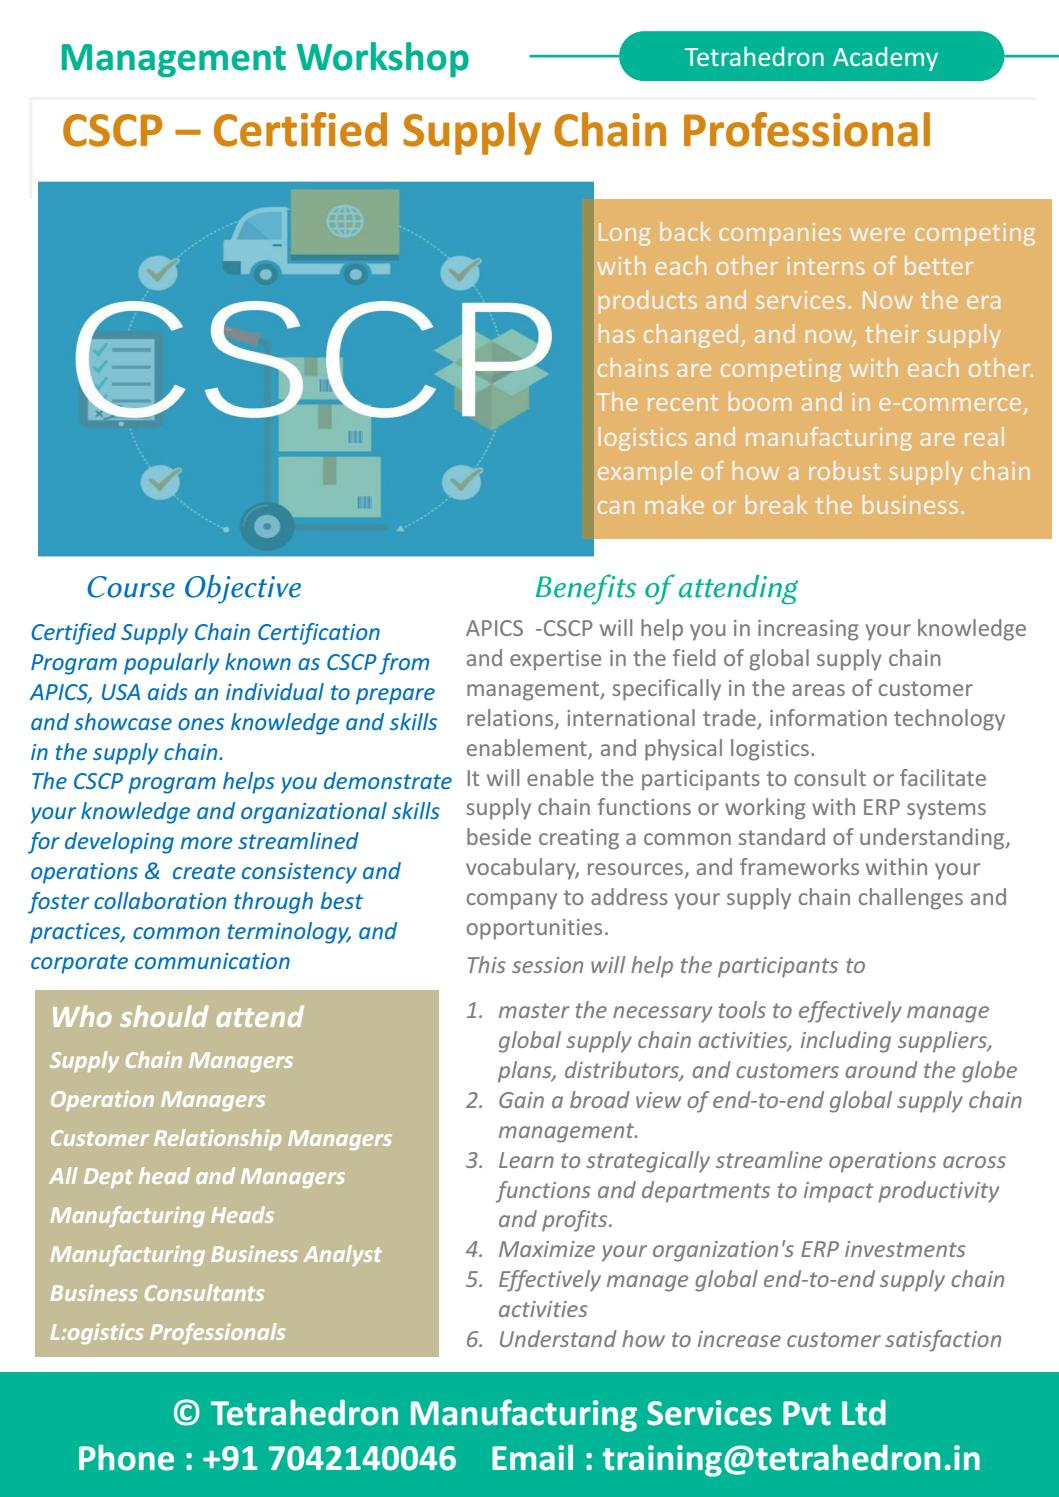 Cscp Certified Supply Chain Professional Workshop By Tetrahedron